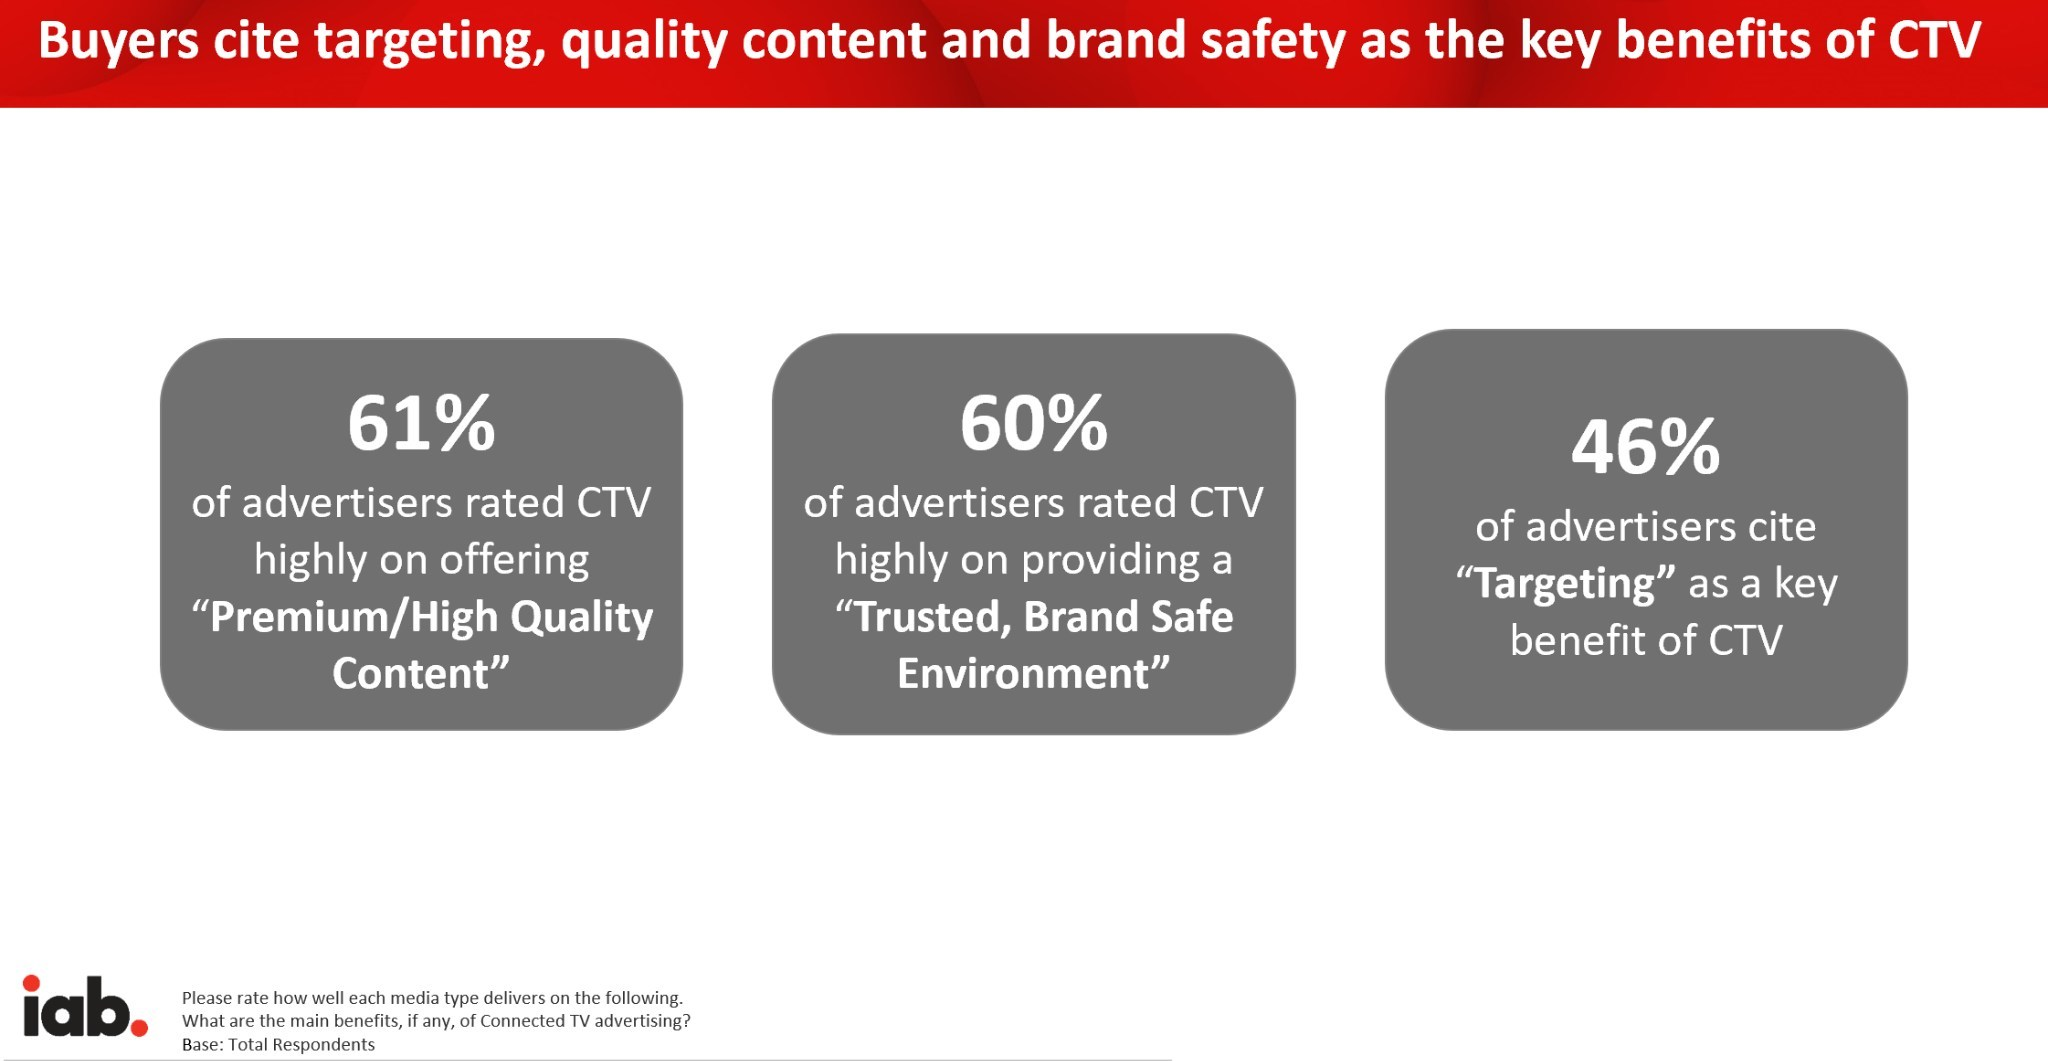 Targeting, Quality Content and Brand Safety key benefits of CTV